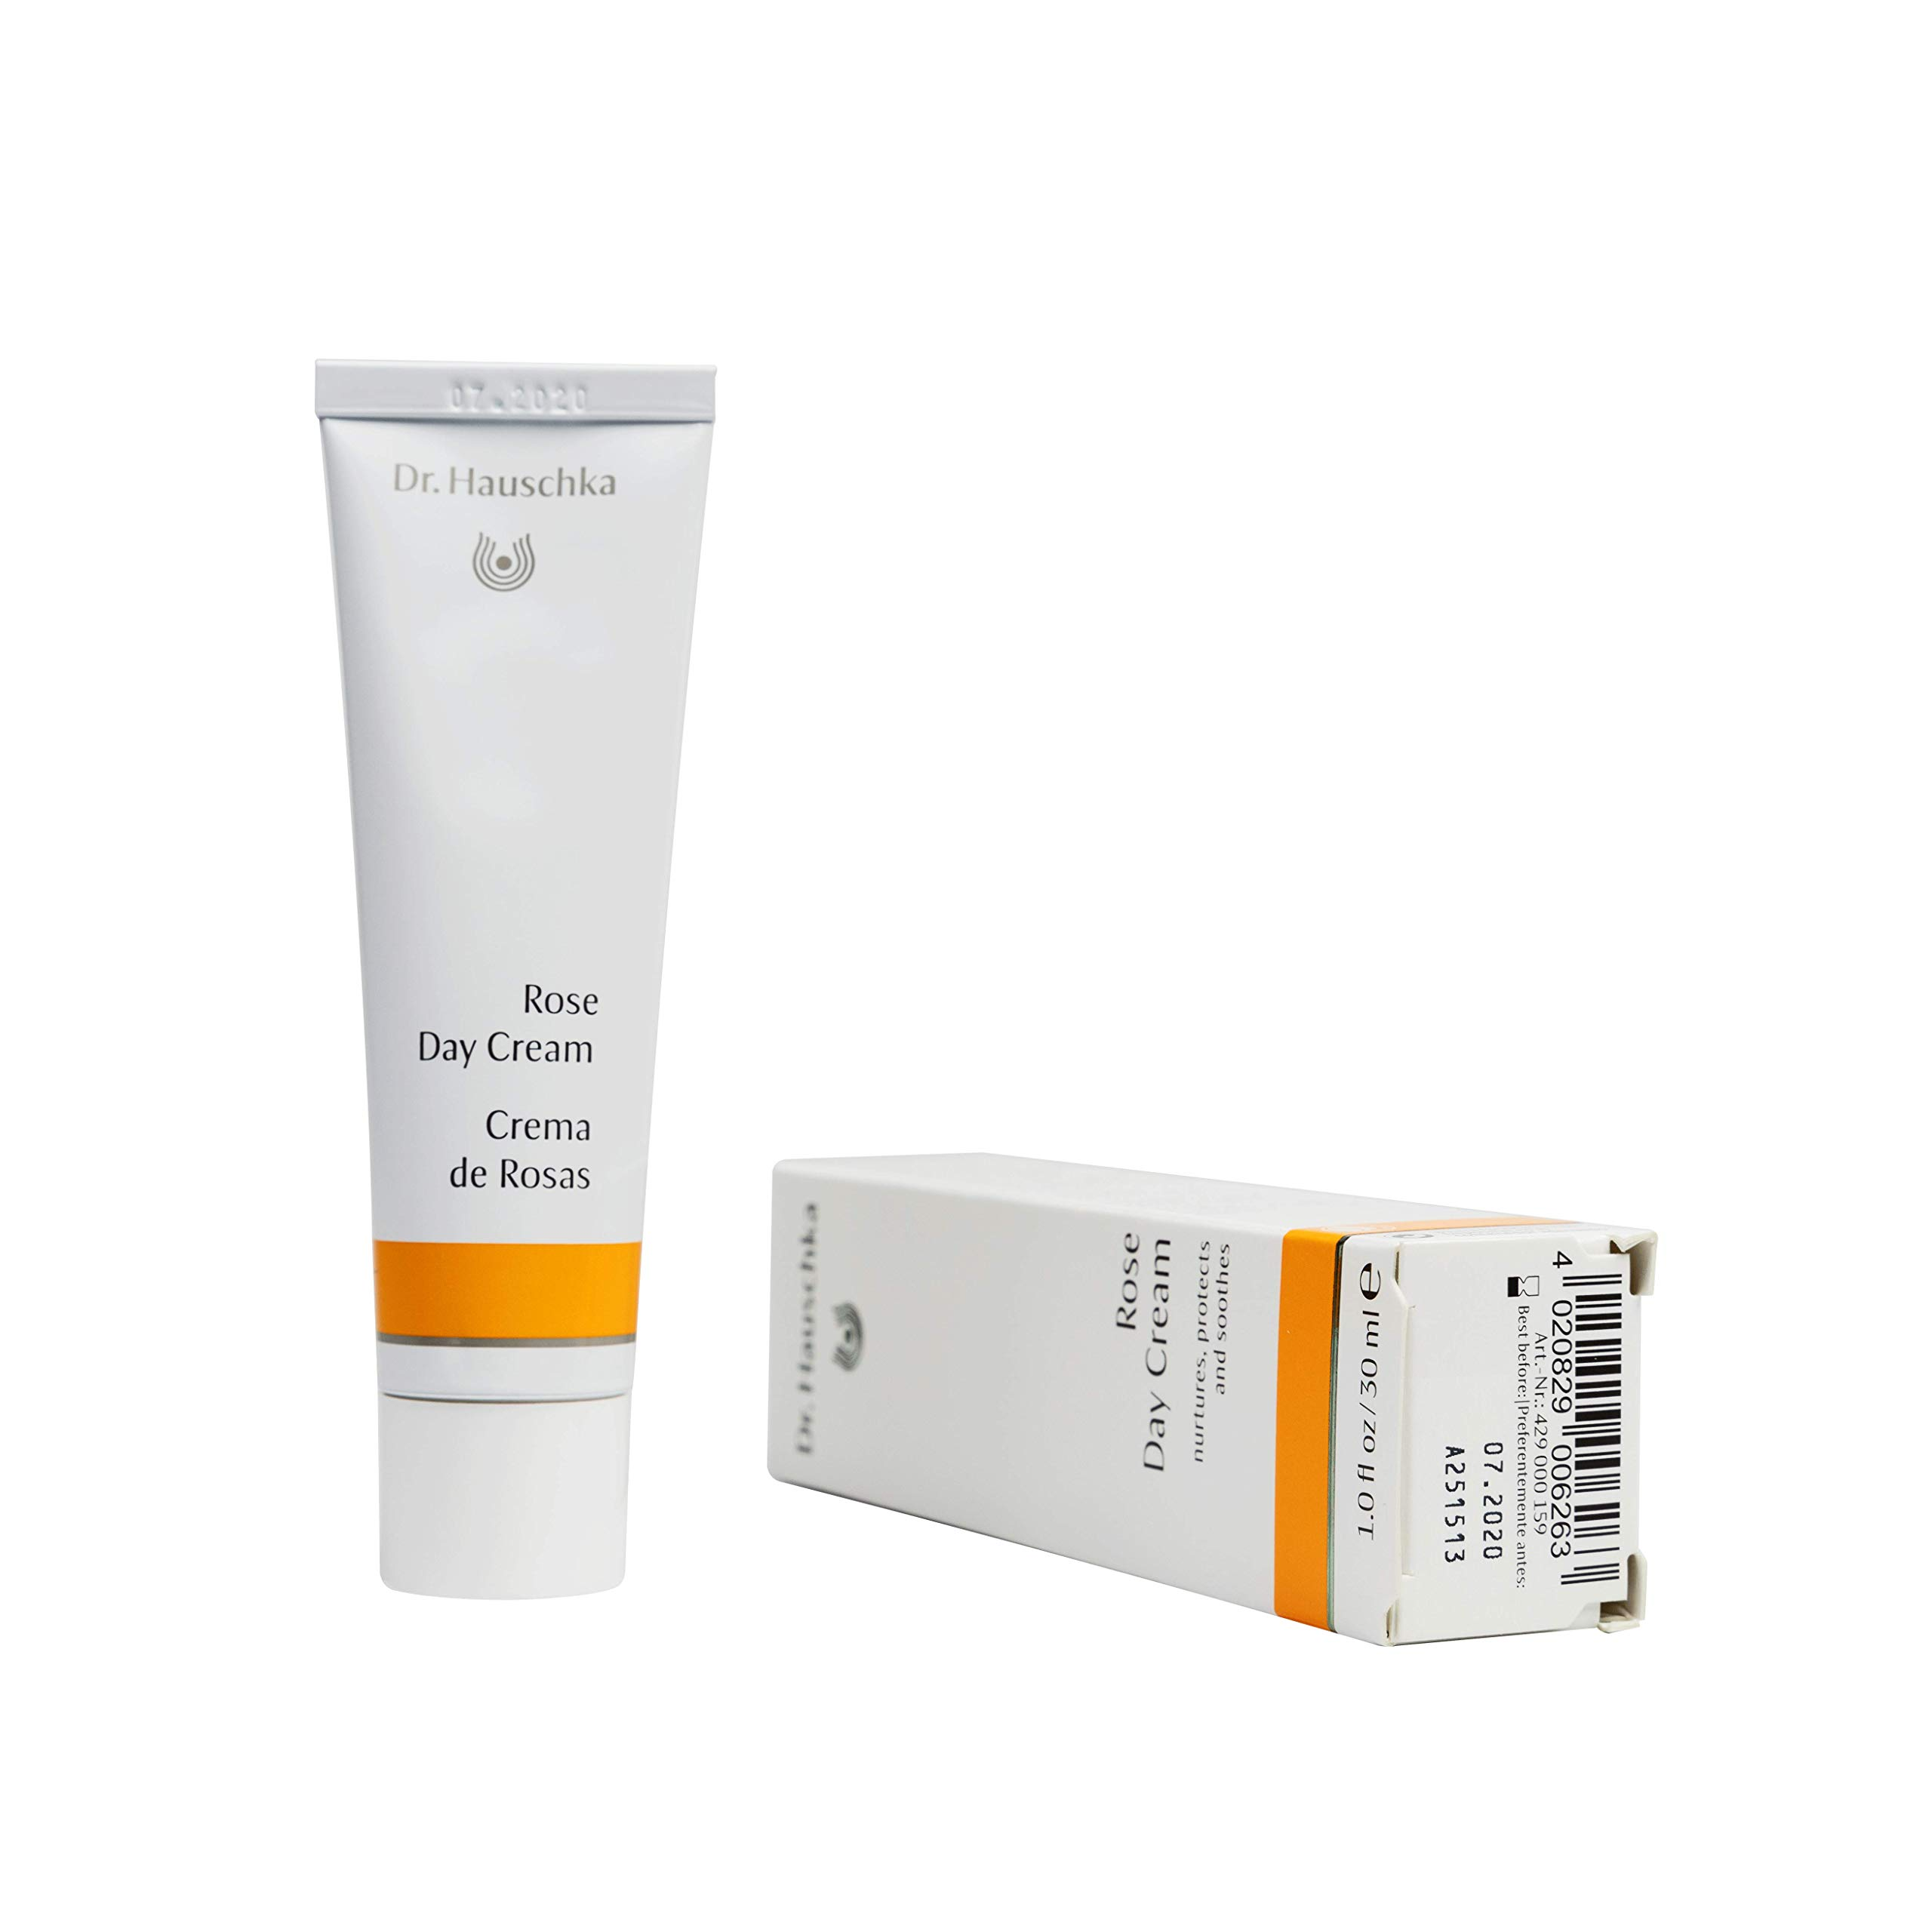 Rose Day Cream 1oz cream by Dr. Hauschka Skin Care by Dr. Hauschka